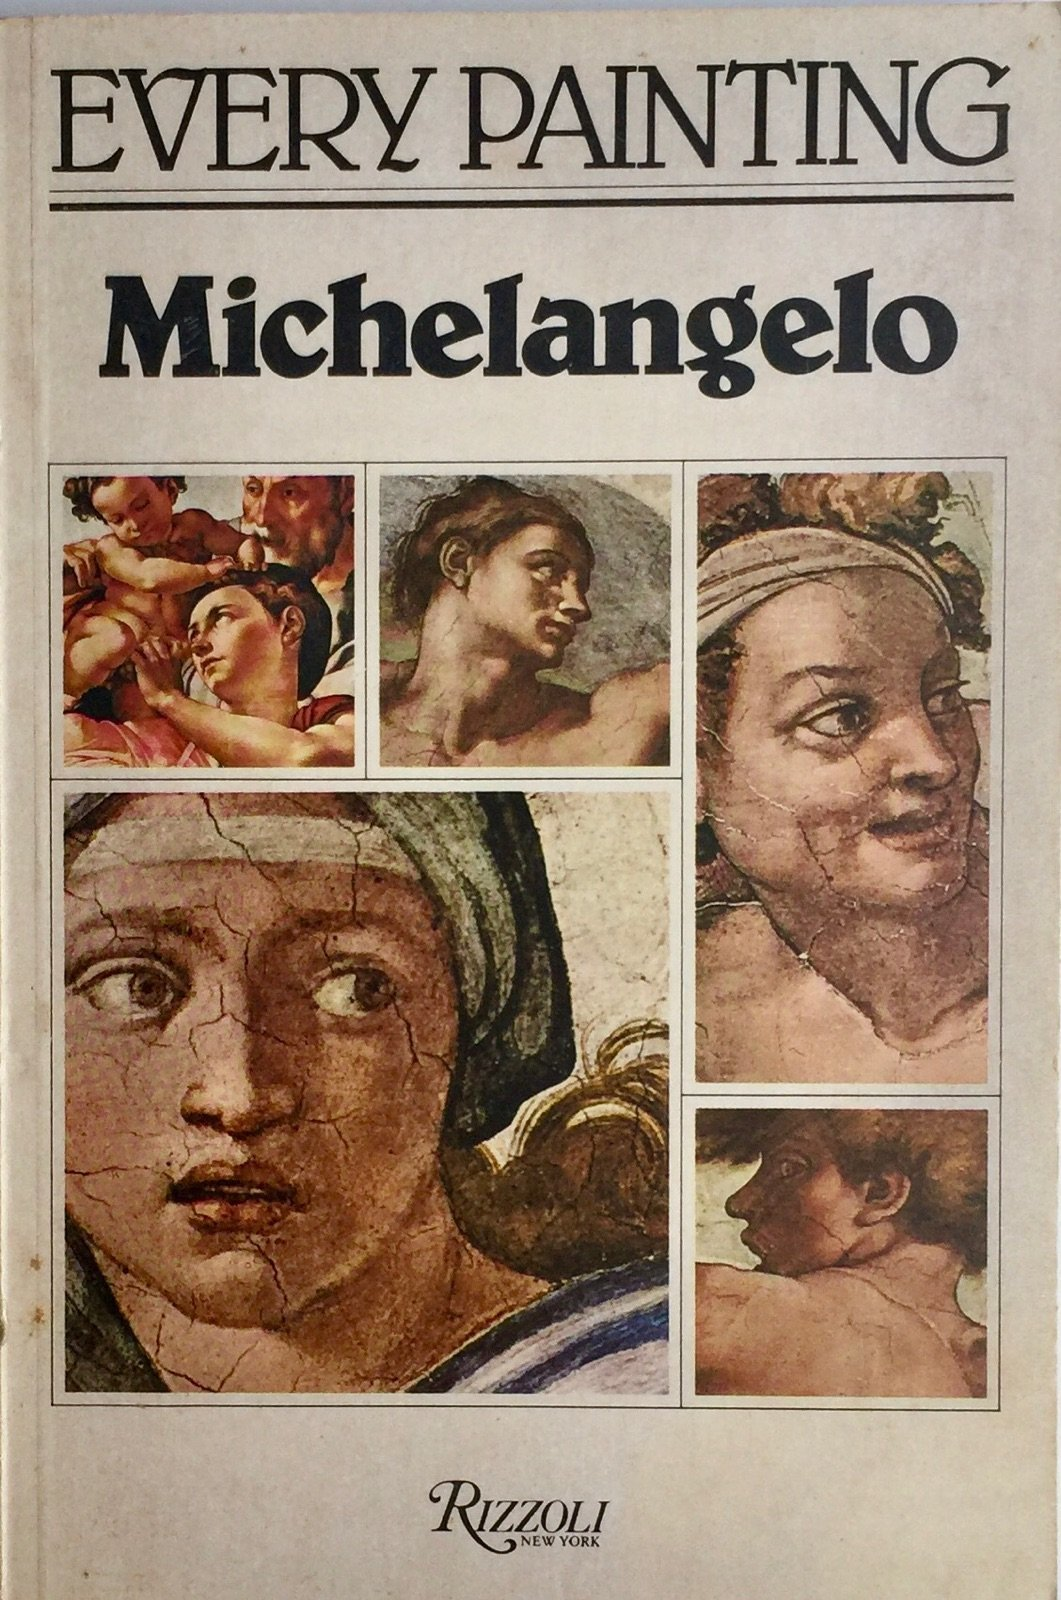 Michelangelo: Every Painting